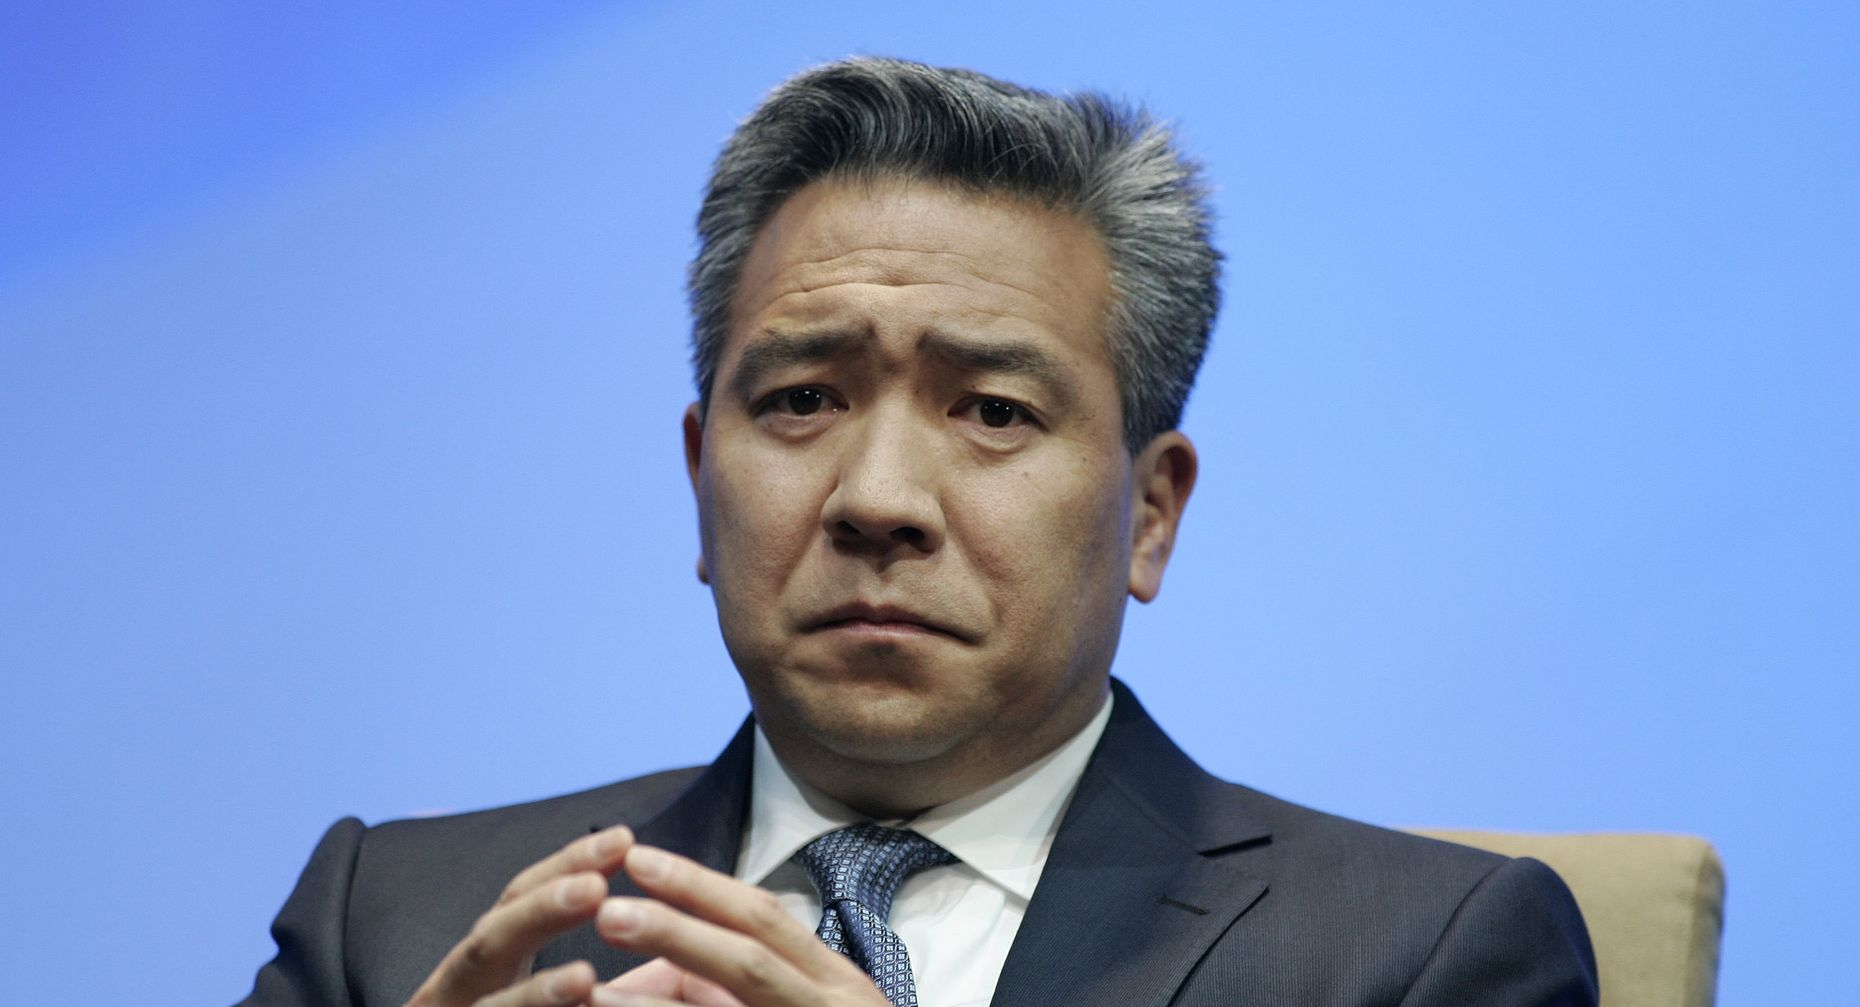 Warner Bros chief Kevin Tsujihara; photo by Bloomberg